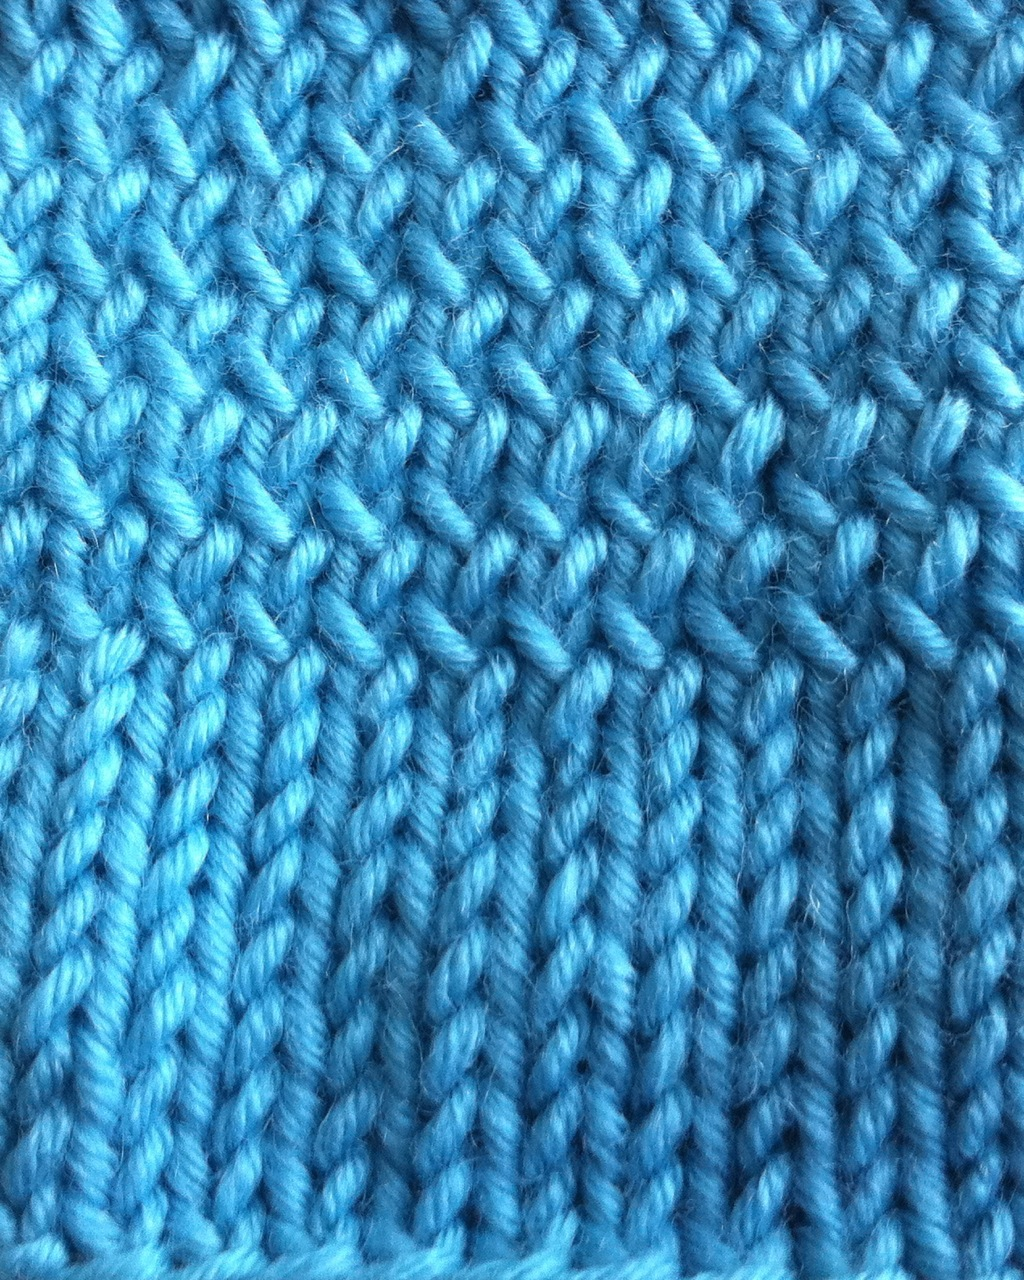 Knitting Stitches Purl Through Back Of Loop : How to Knit Through the Back Loop NEW STITCH A DAY